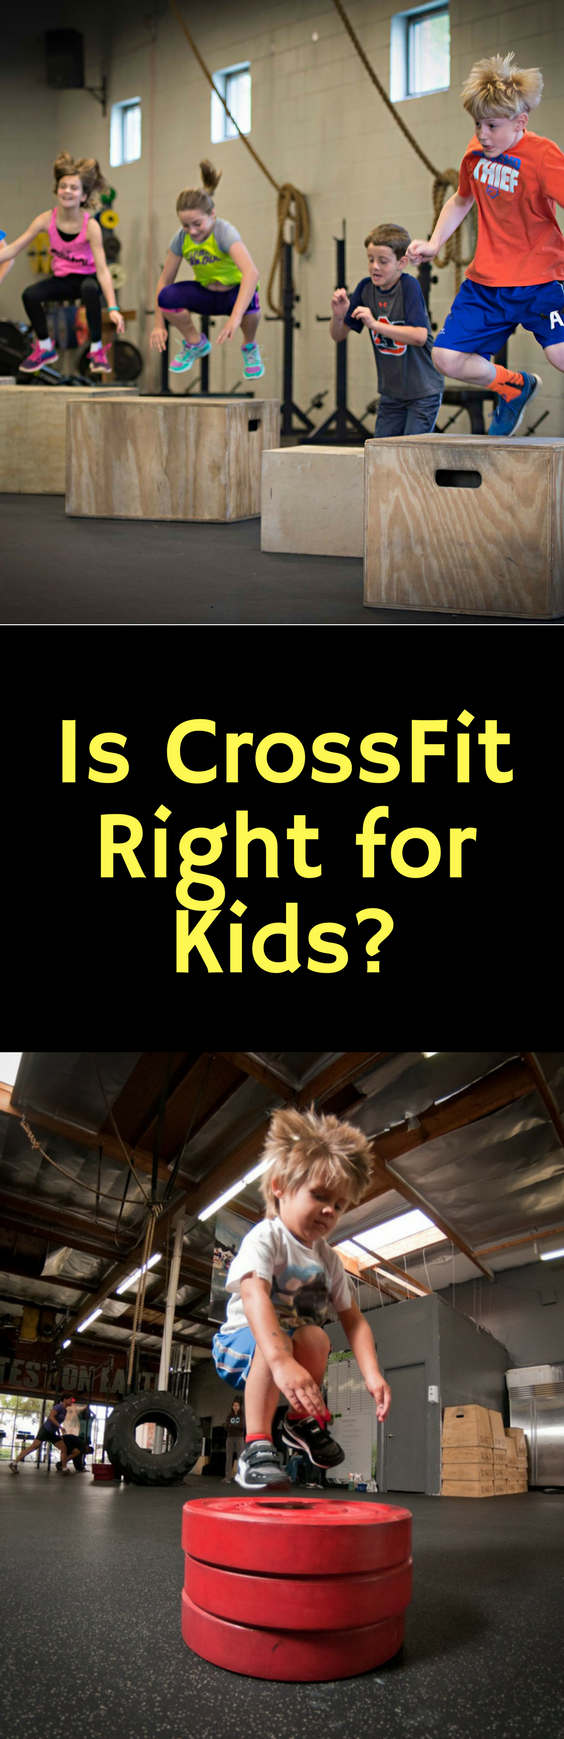 Is CrossFit Right for Kids? 3crossfit